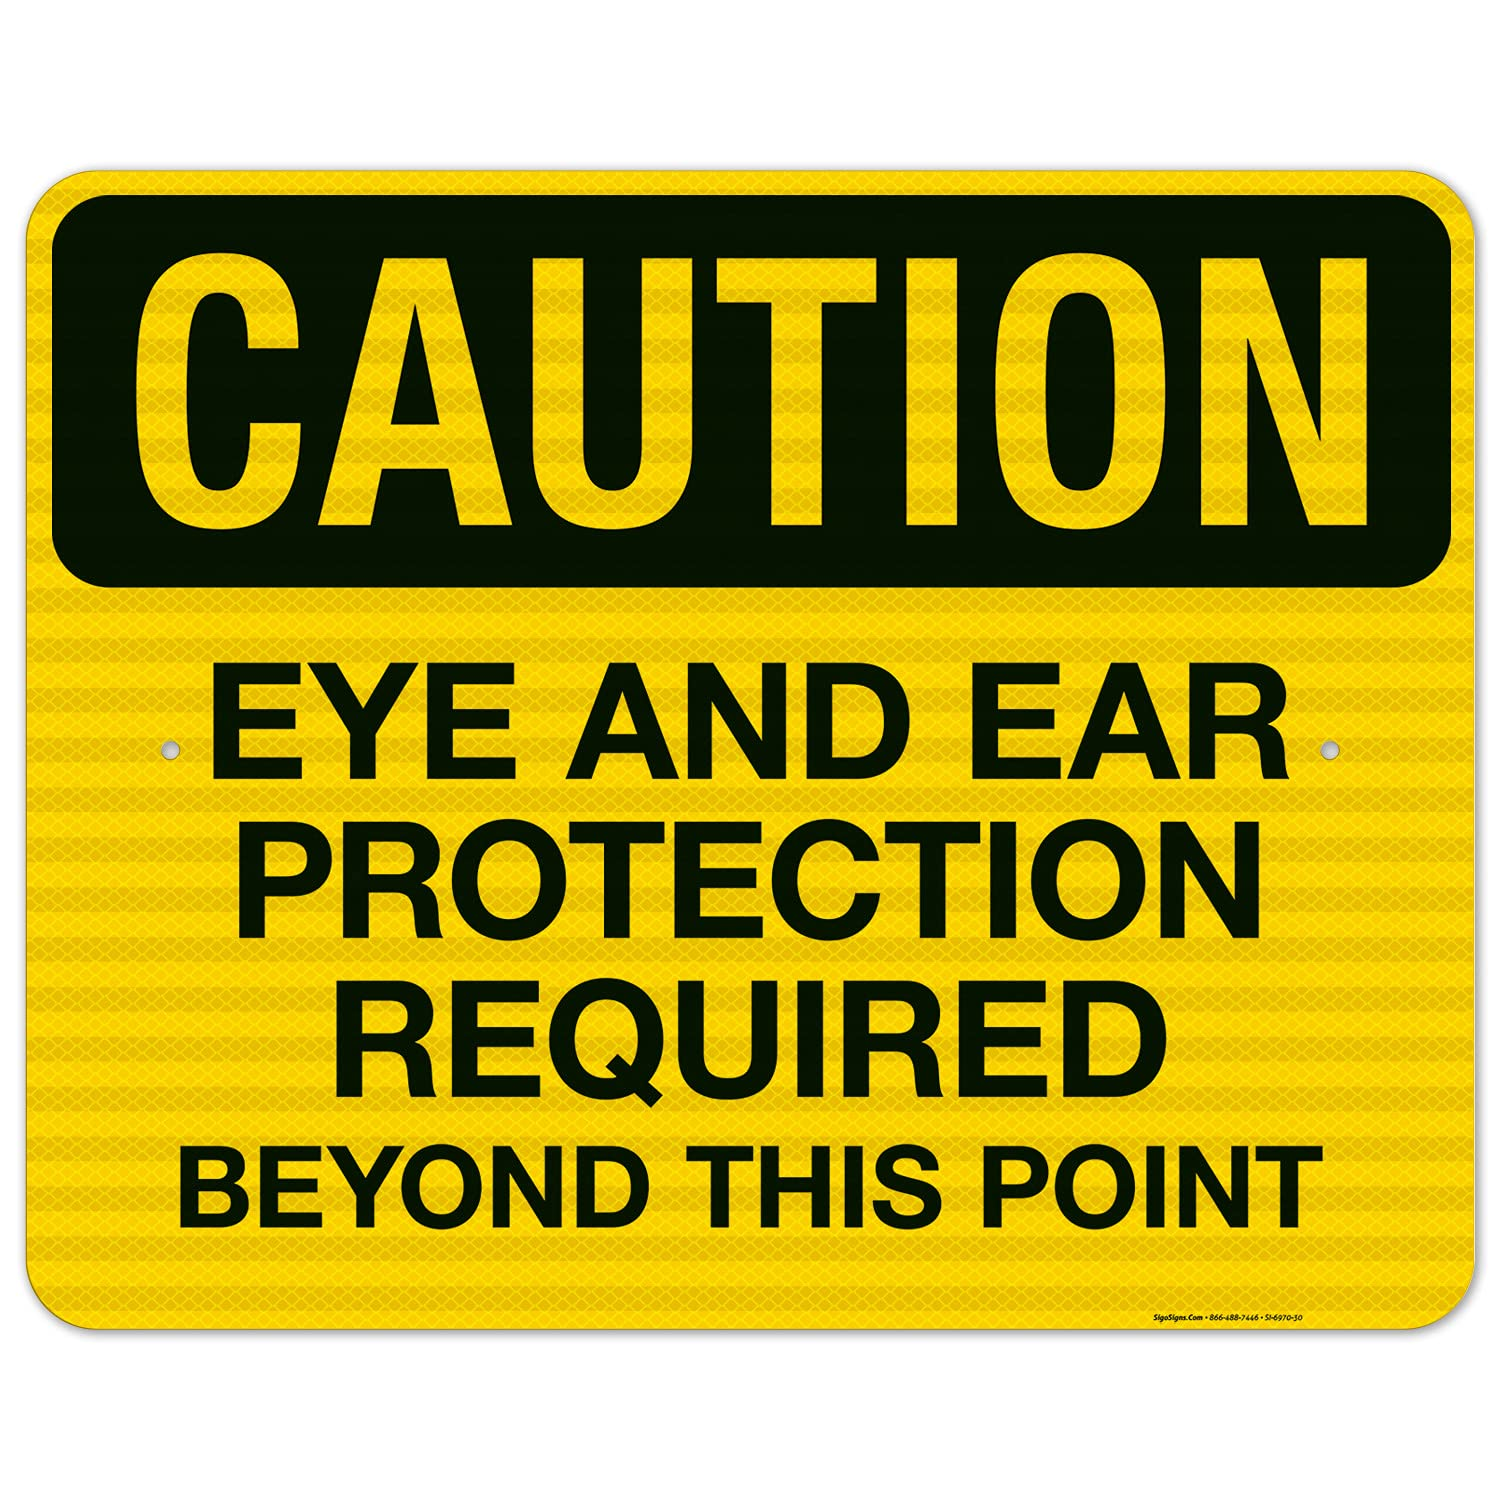 Caution Eye and Ear Protection Limited time cheap sale Required E Sign 24x30 3M service Inches